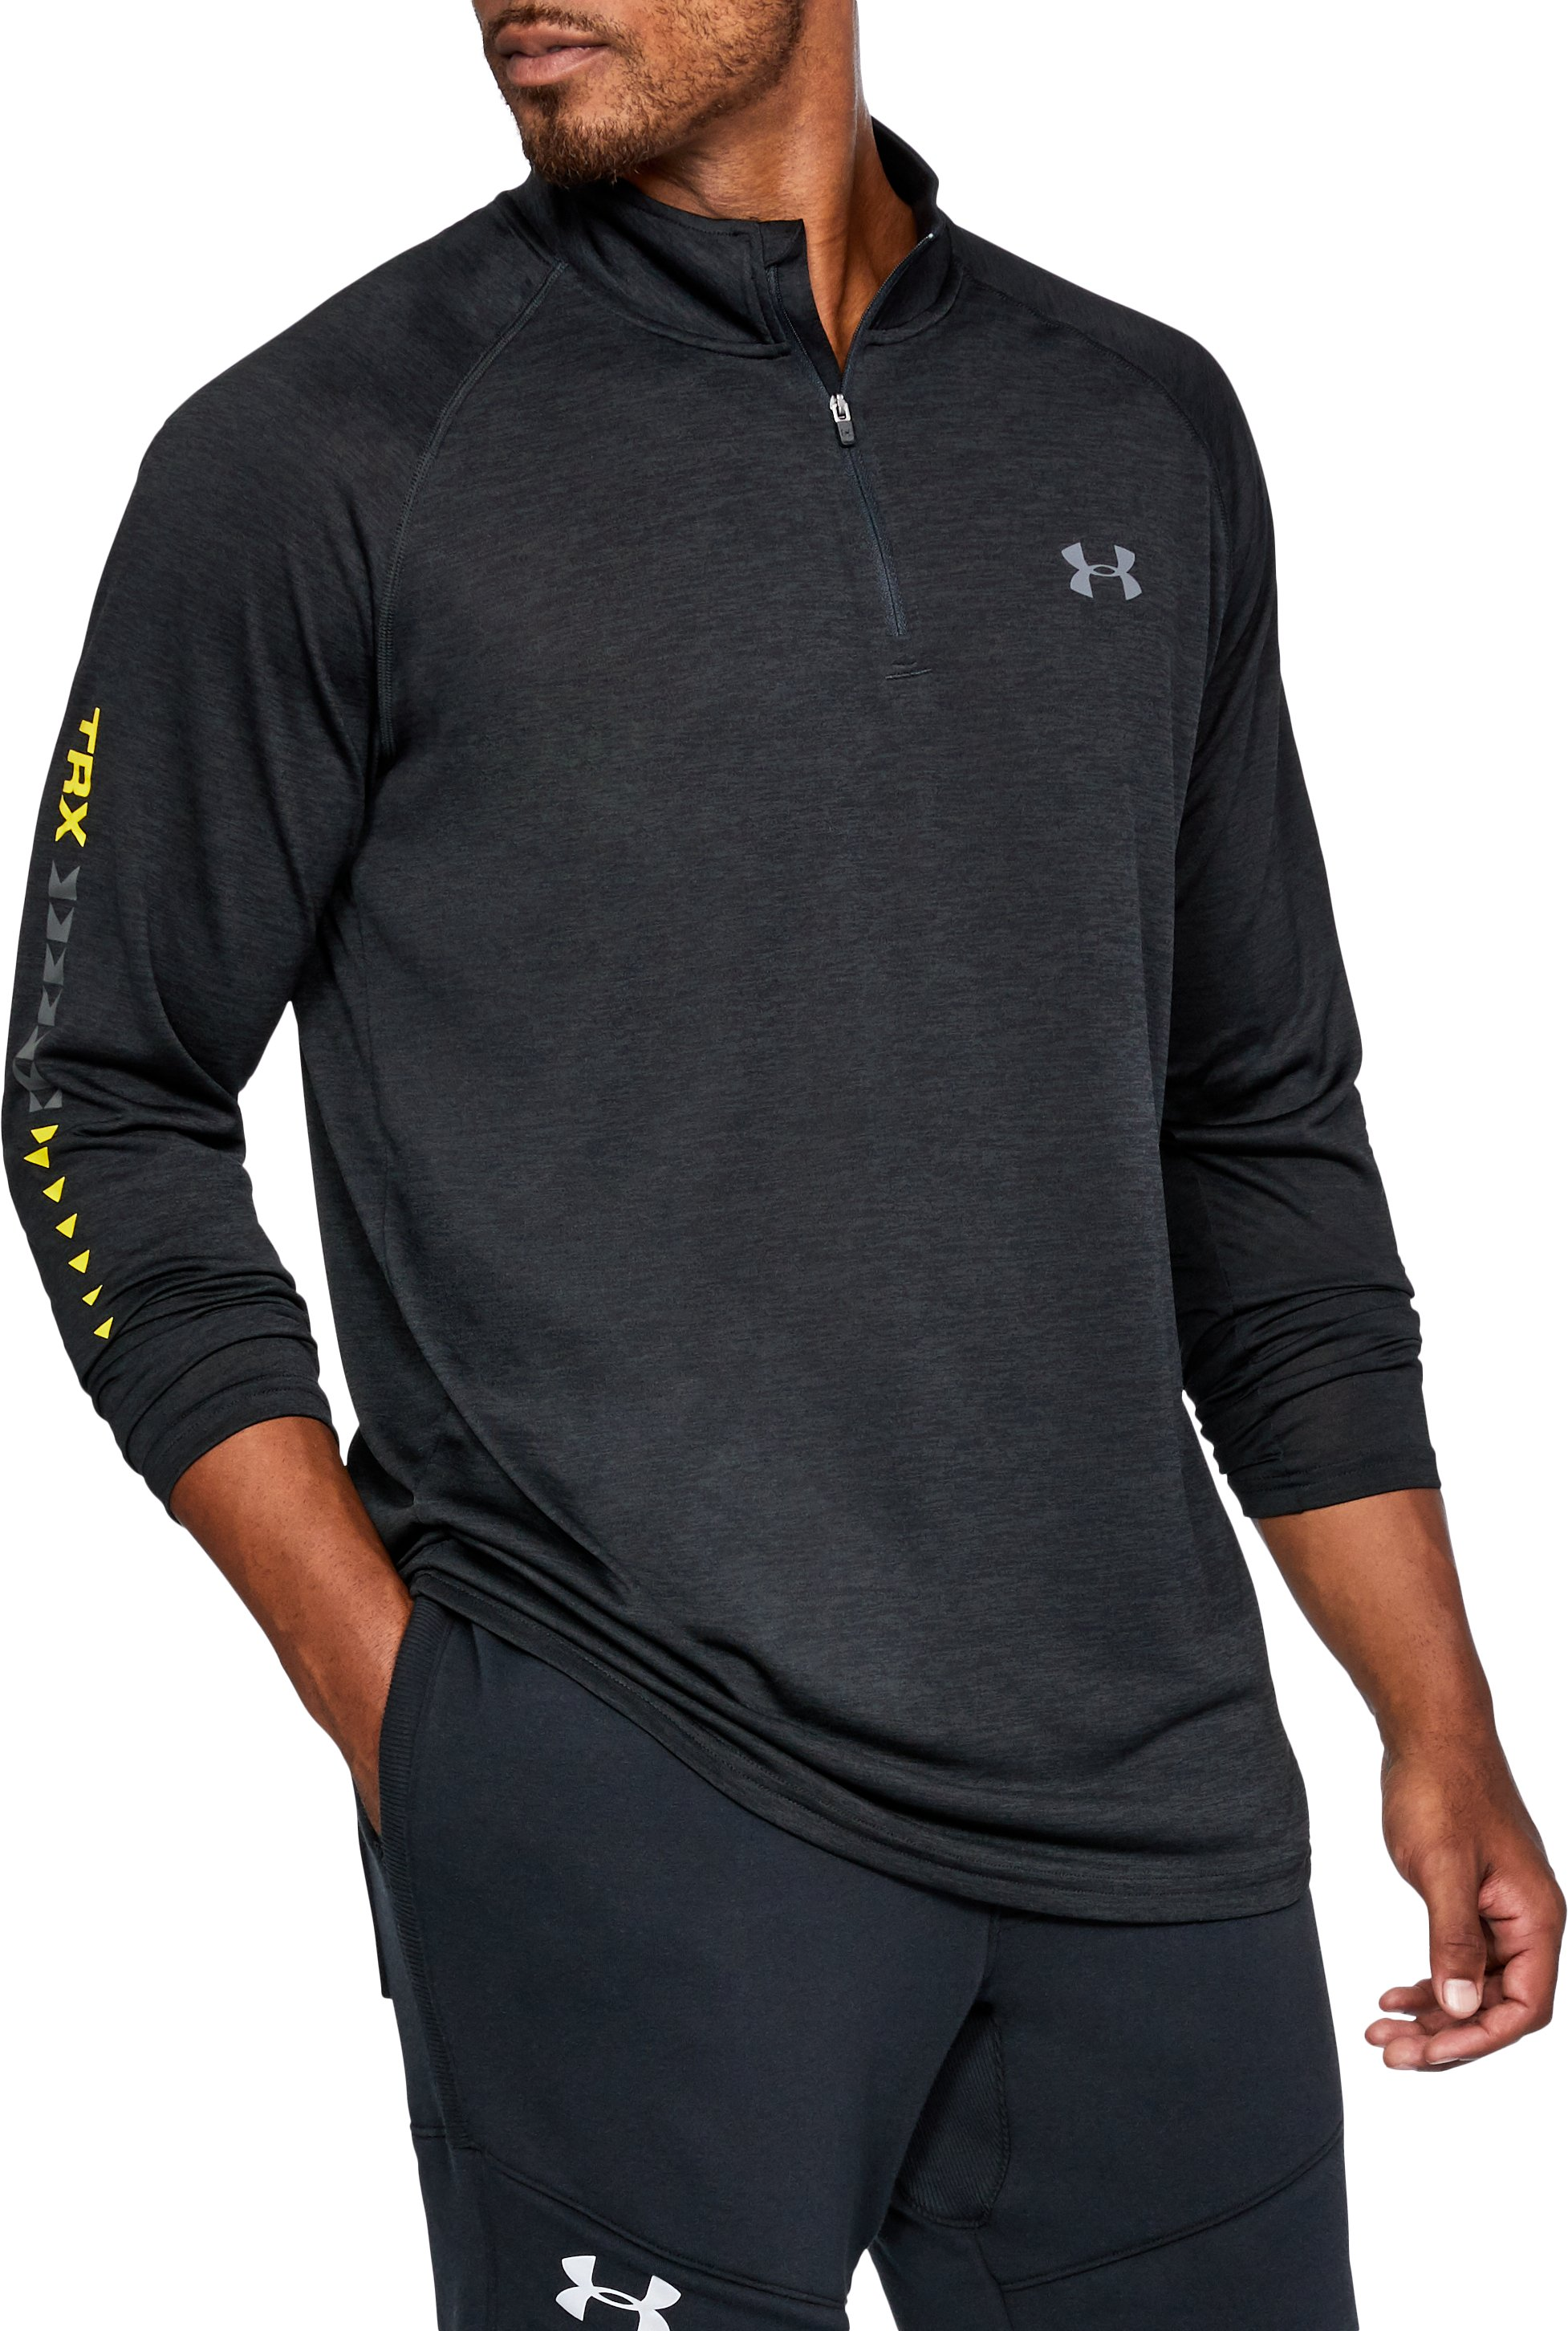 Men's UA x TRX ¼ Zip, Black